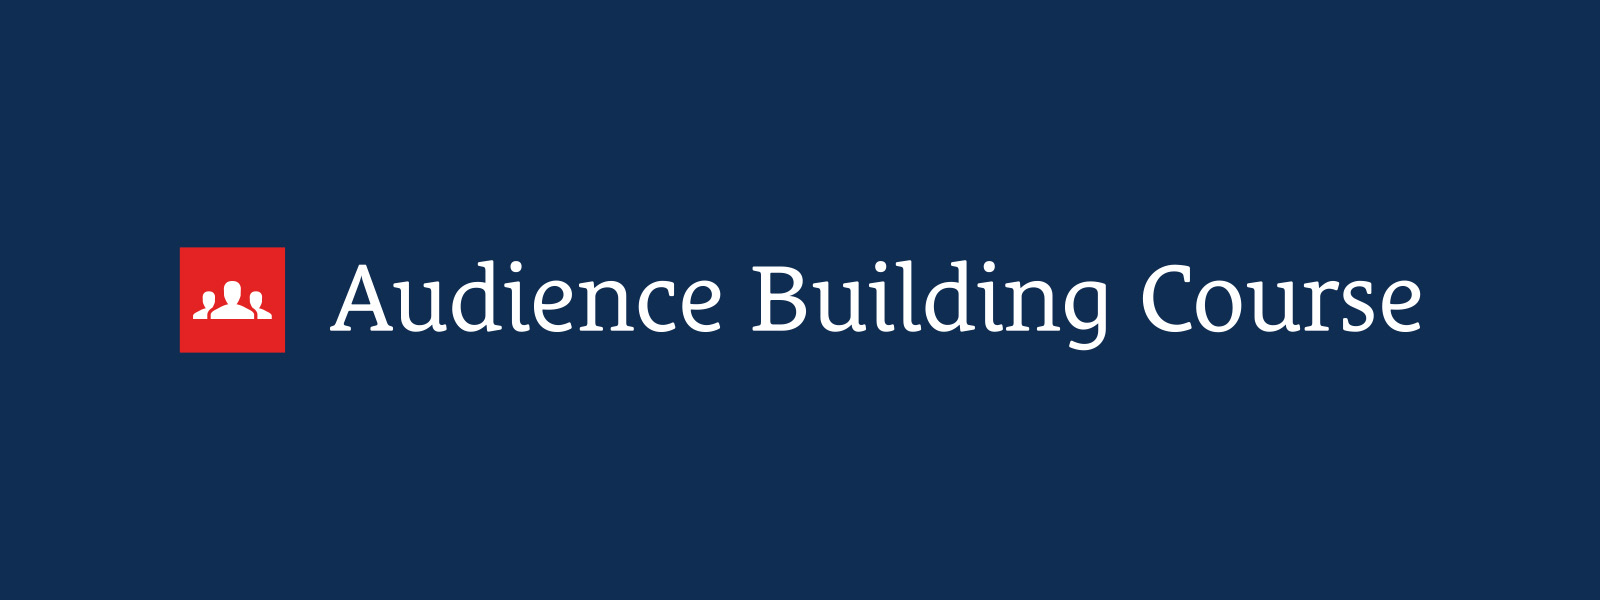 audience-building-course